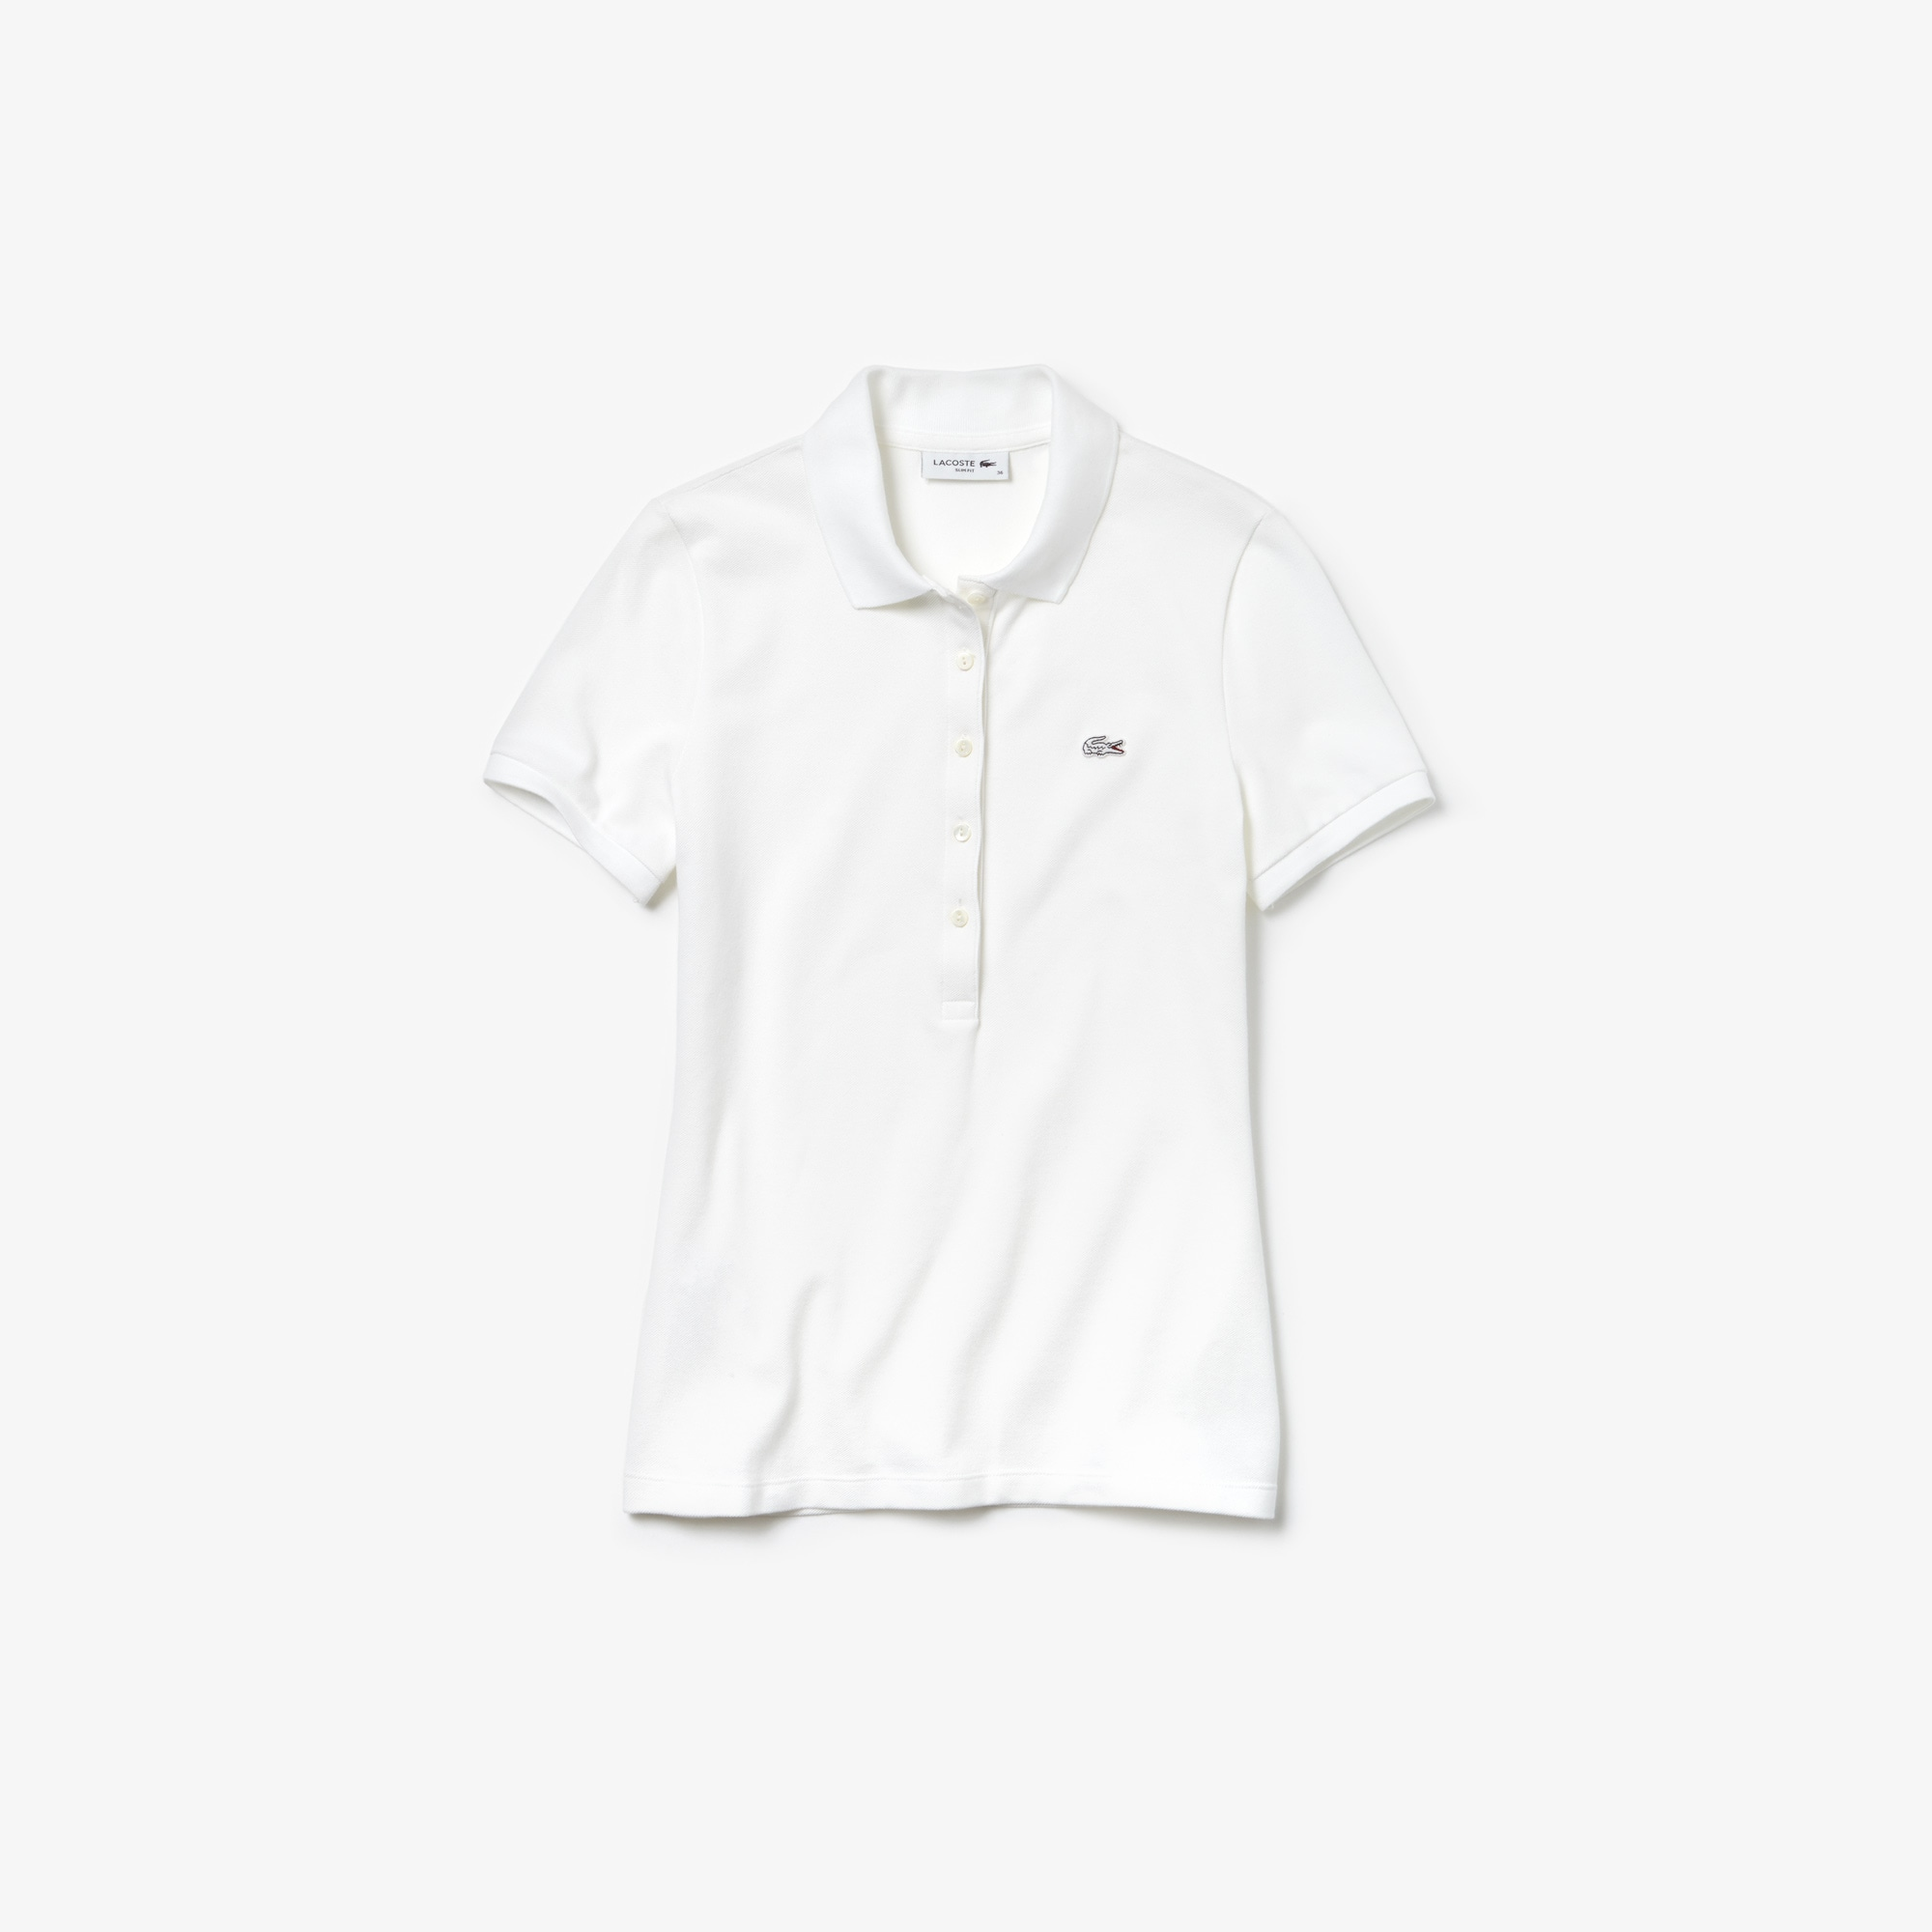 70ac4225bd73 Women s Lacoste Slim Fit Stretch Mini Cotton Piqué Polo Shirt